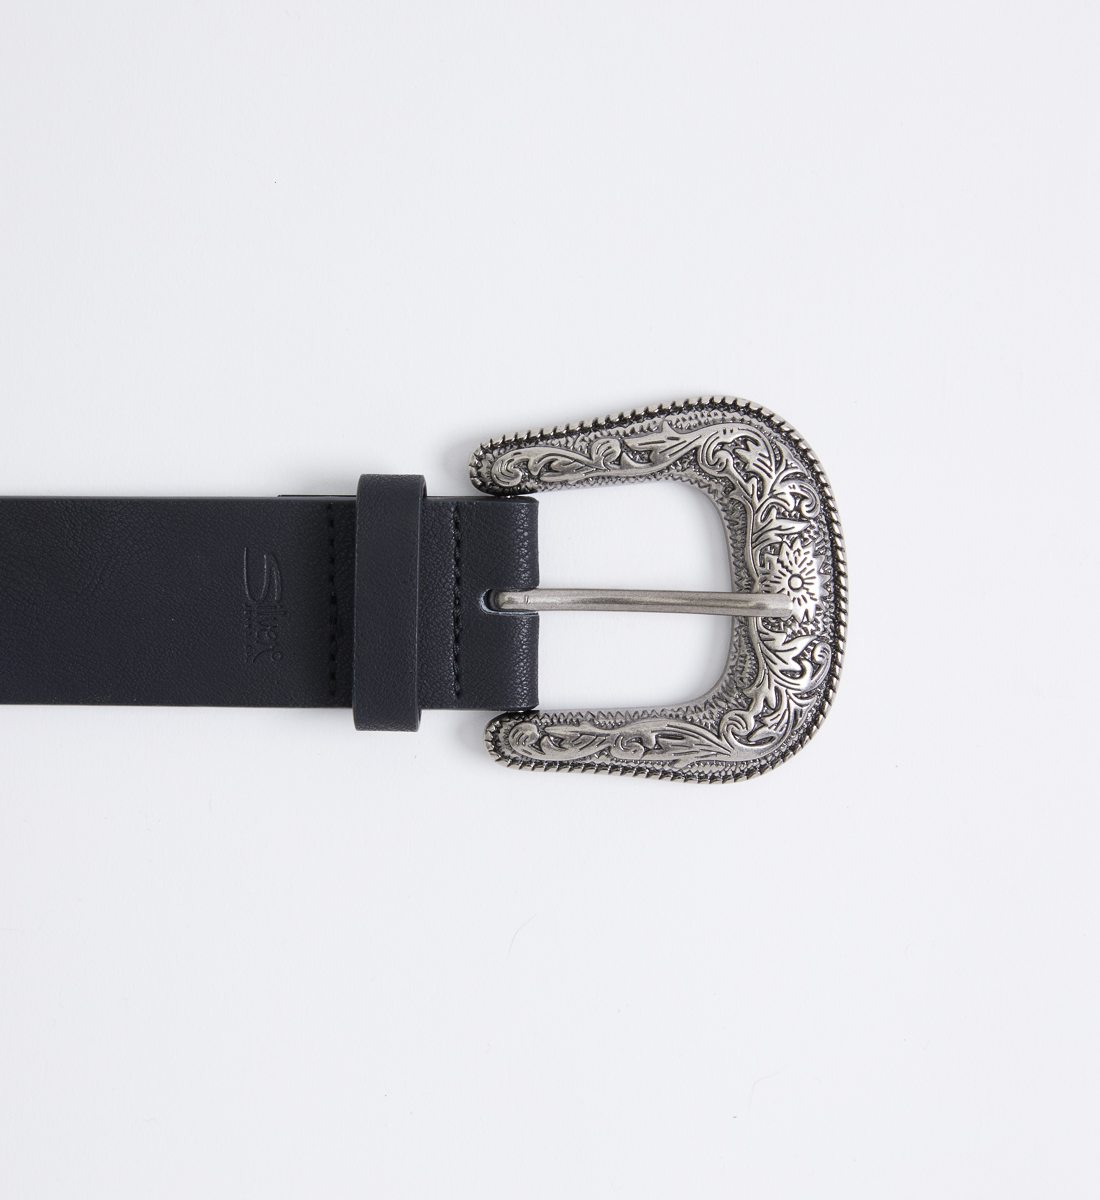 Western Studded Womens Belt Front